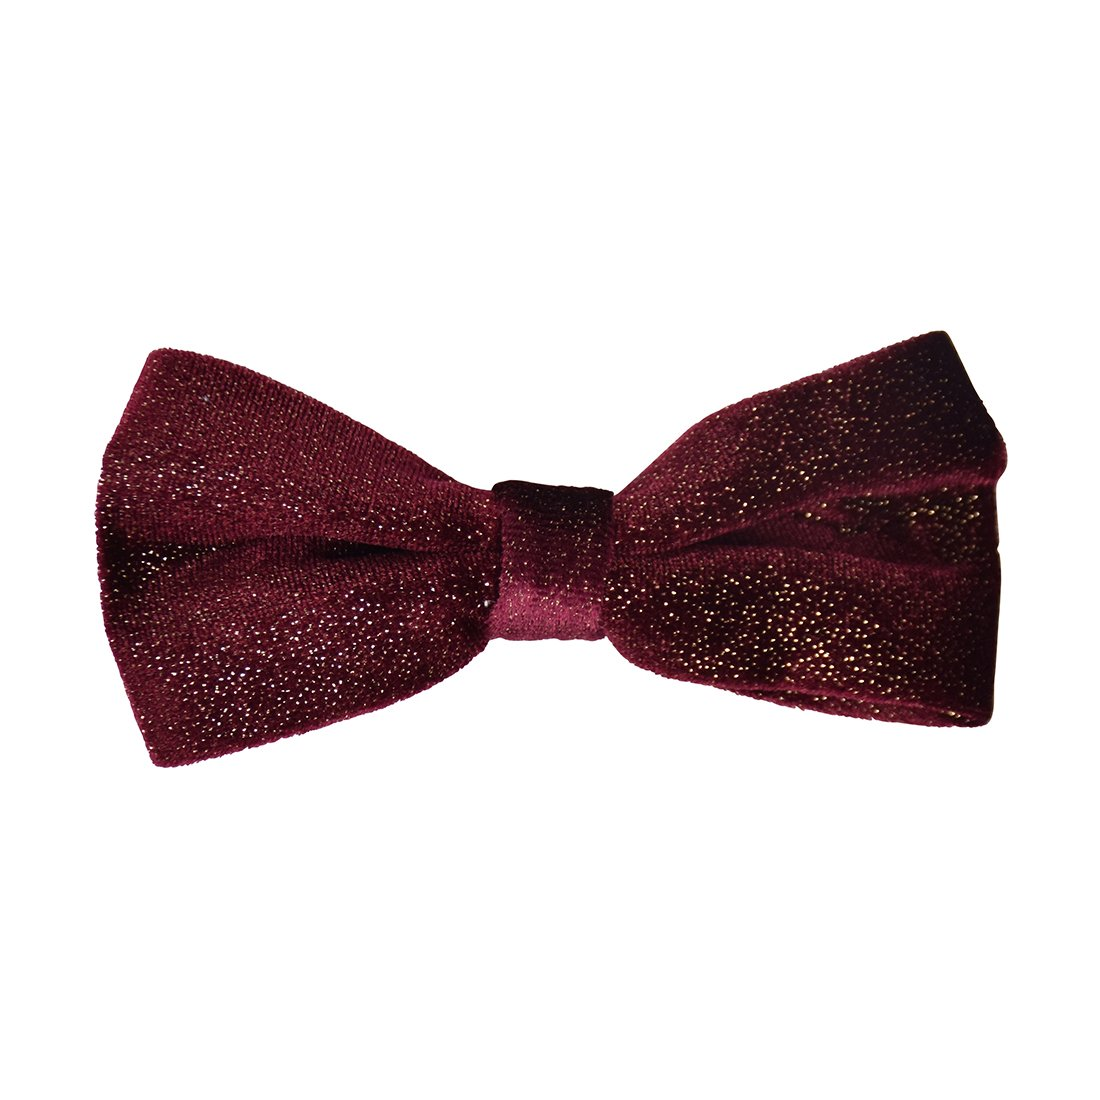 Pre-tied Bowtie for Boys Clip-on Metallic Velvet-Burgundy